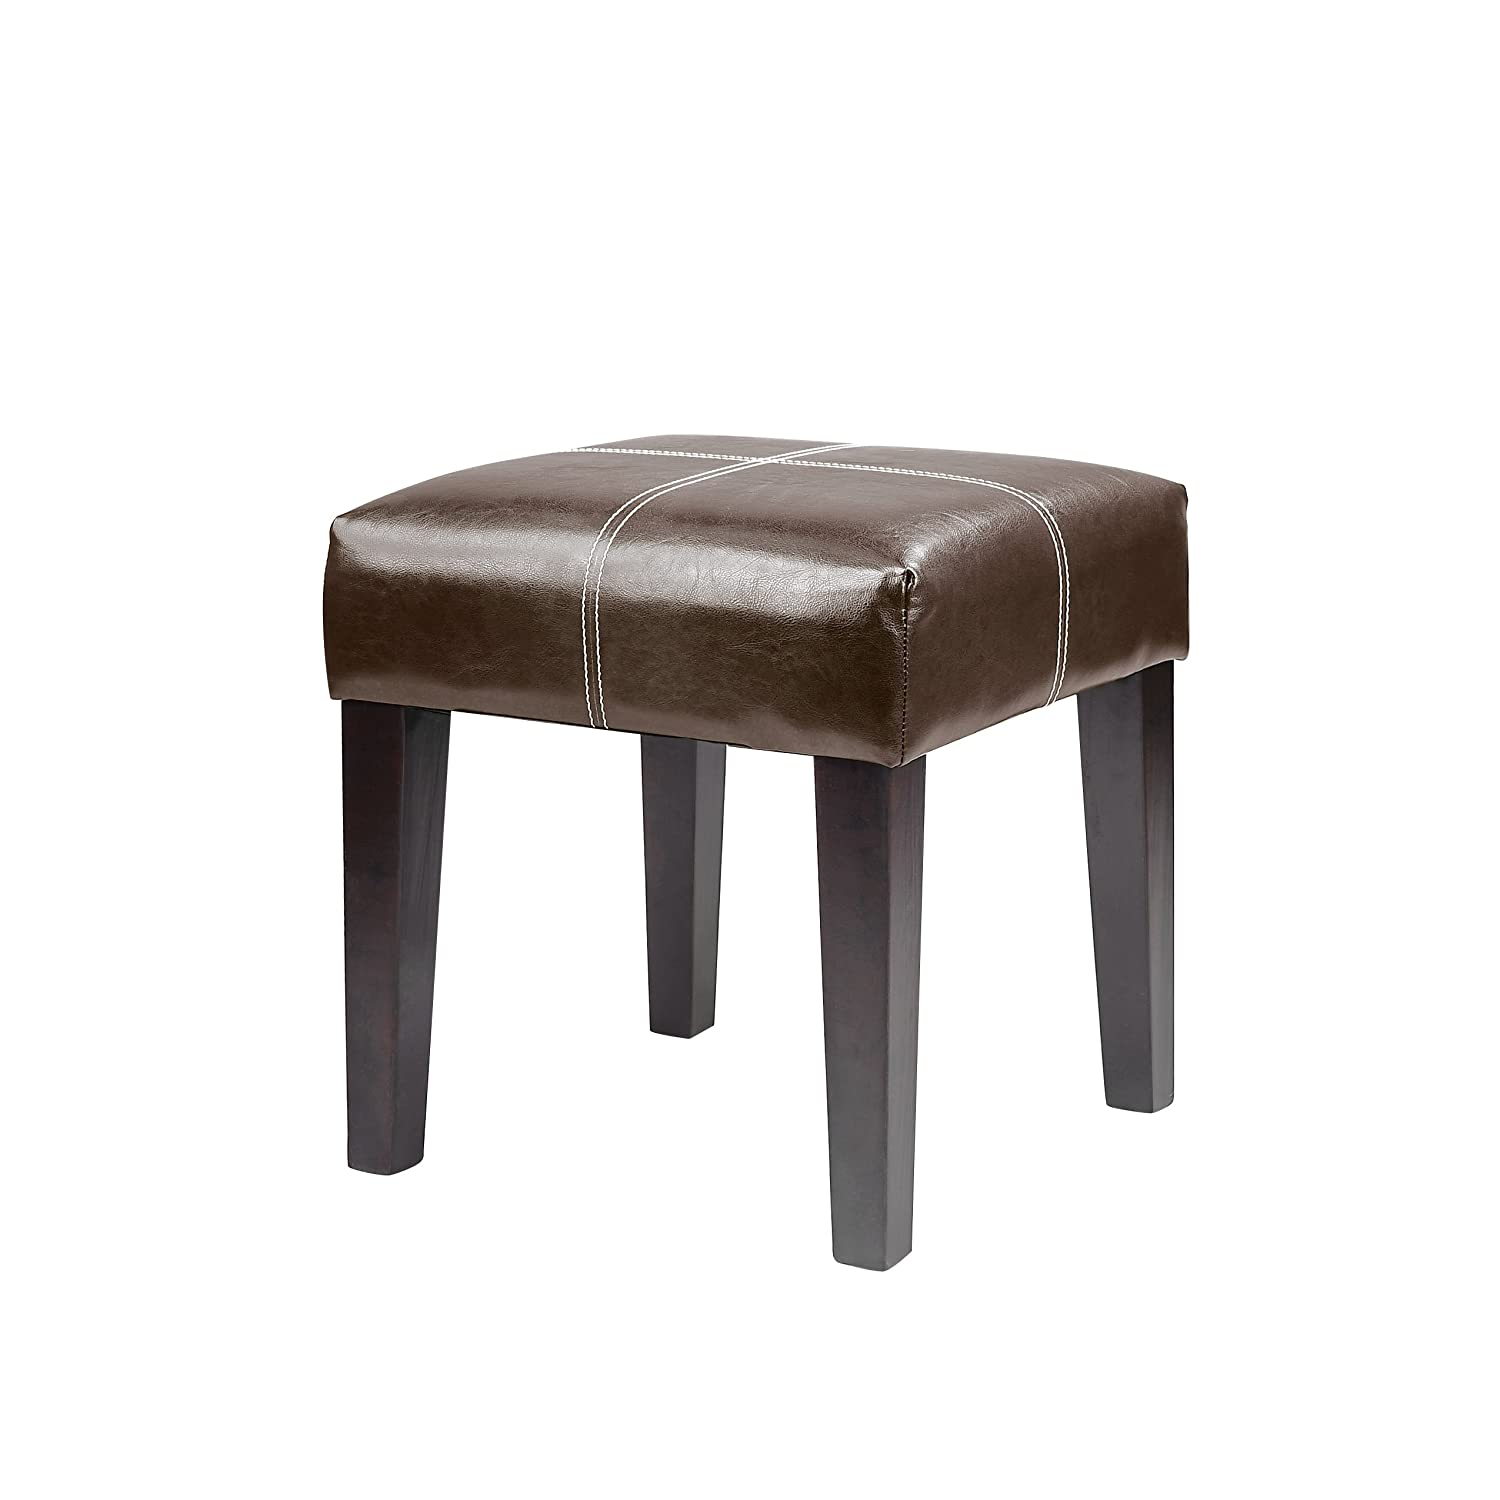 CorLiving Antonio Bench in Dark Brown Bonded Leather, 16-Inch